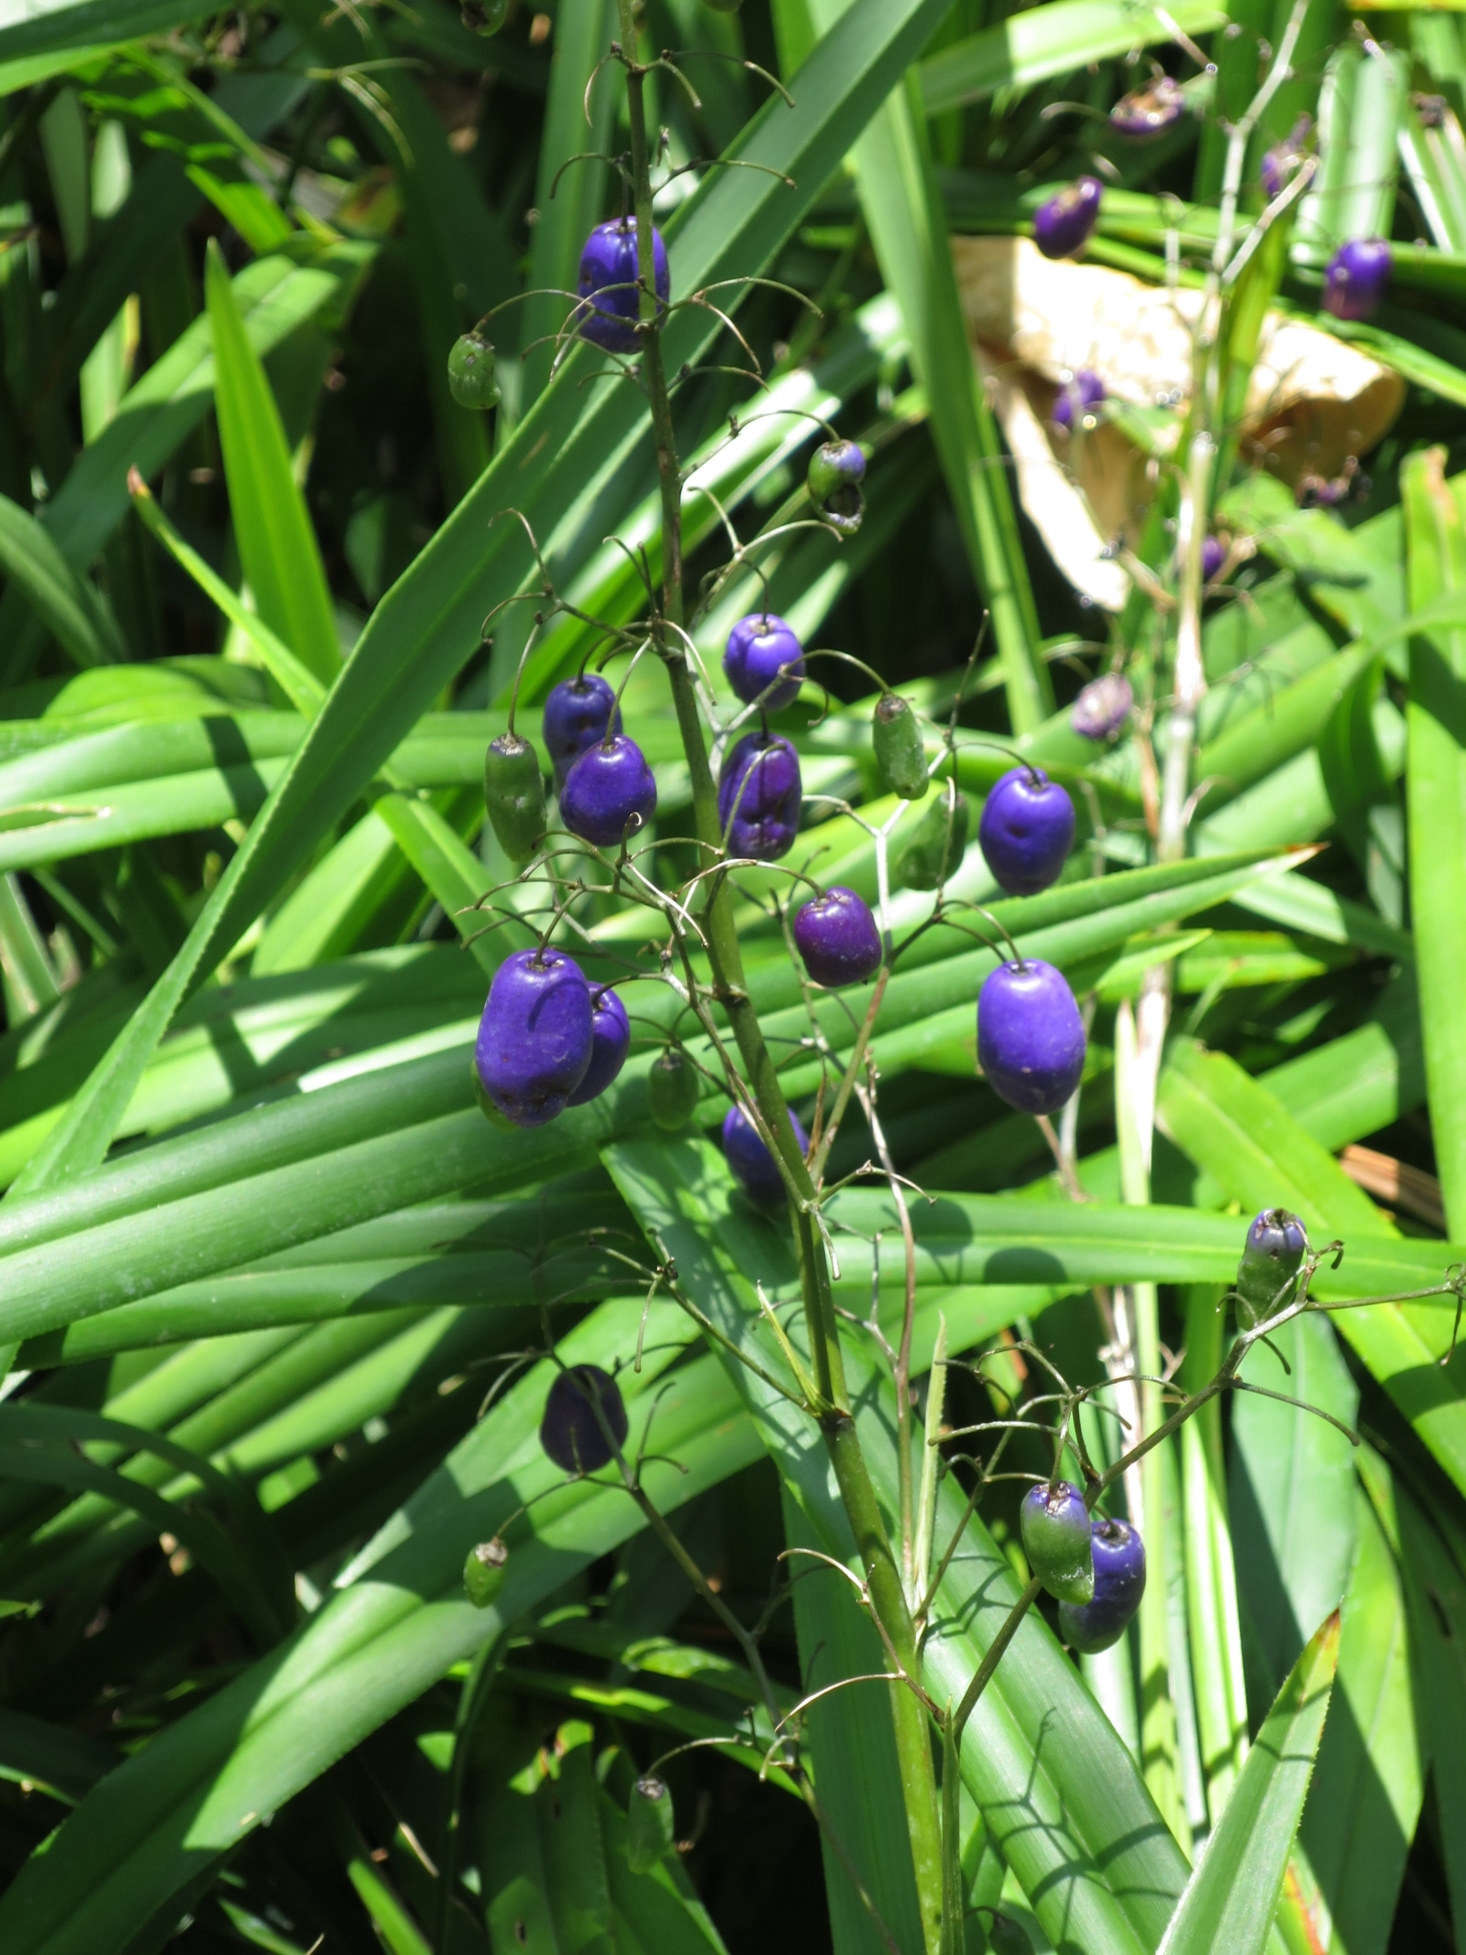 After flowers fade, flax lily produces berries. Photograph by Wmpearl via Wikimedia.